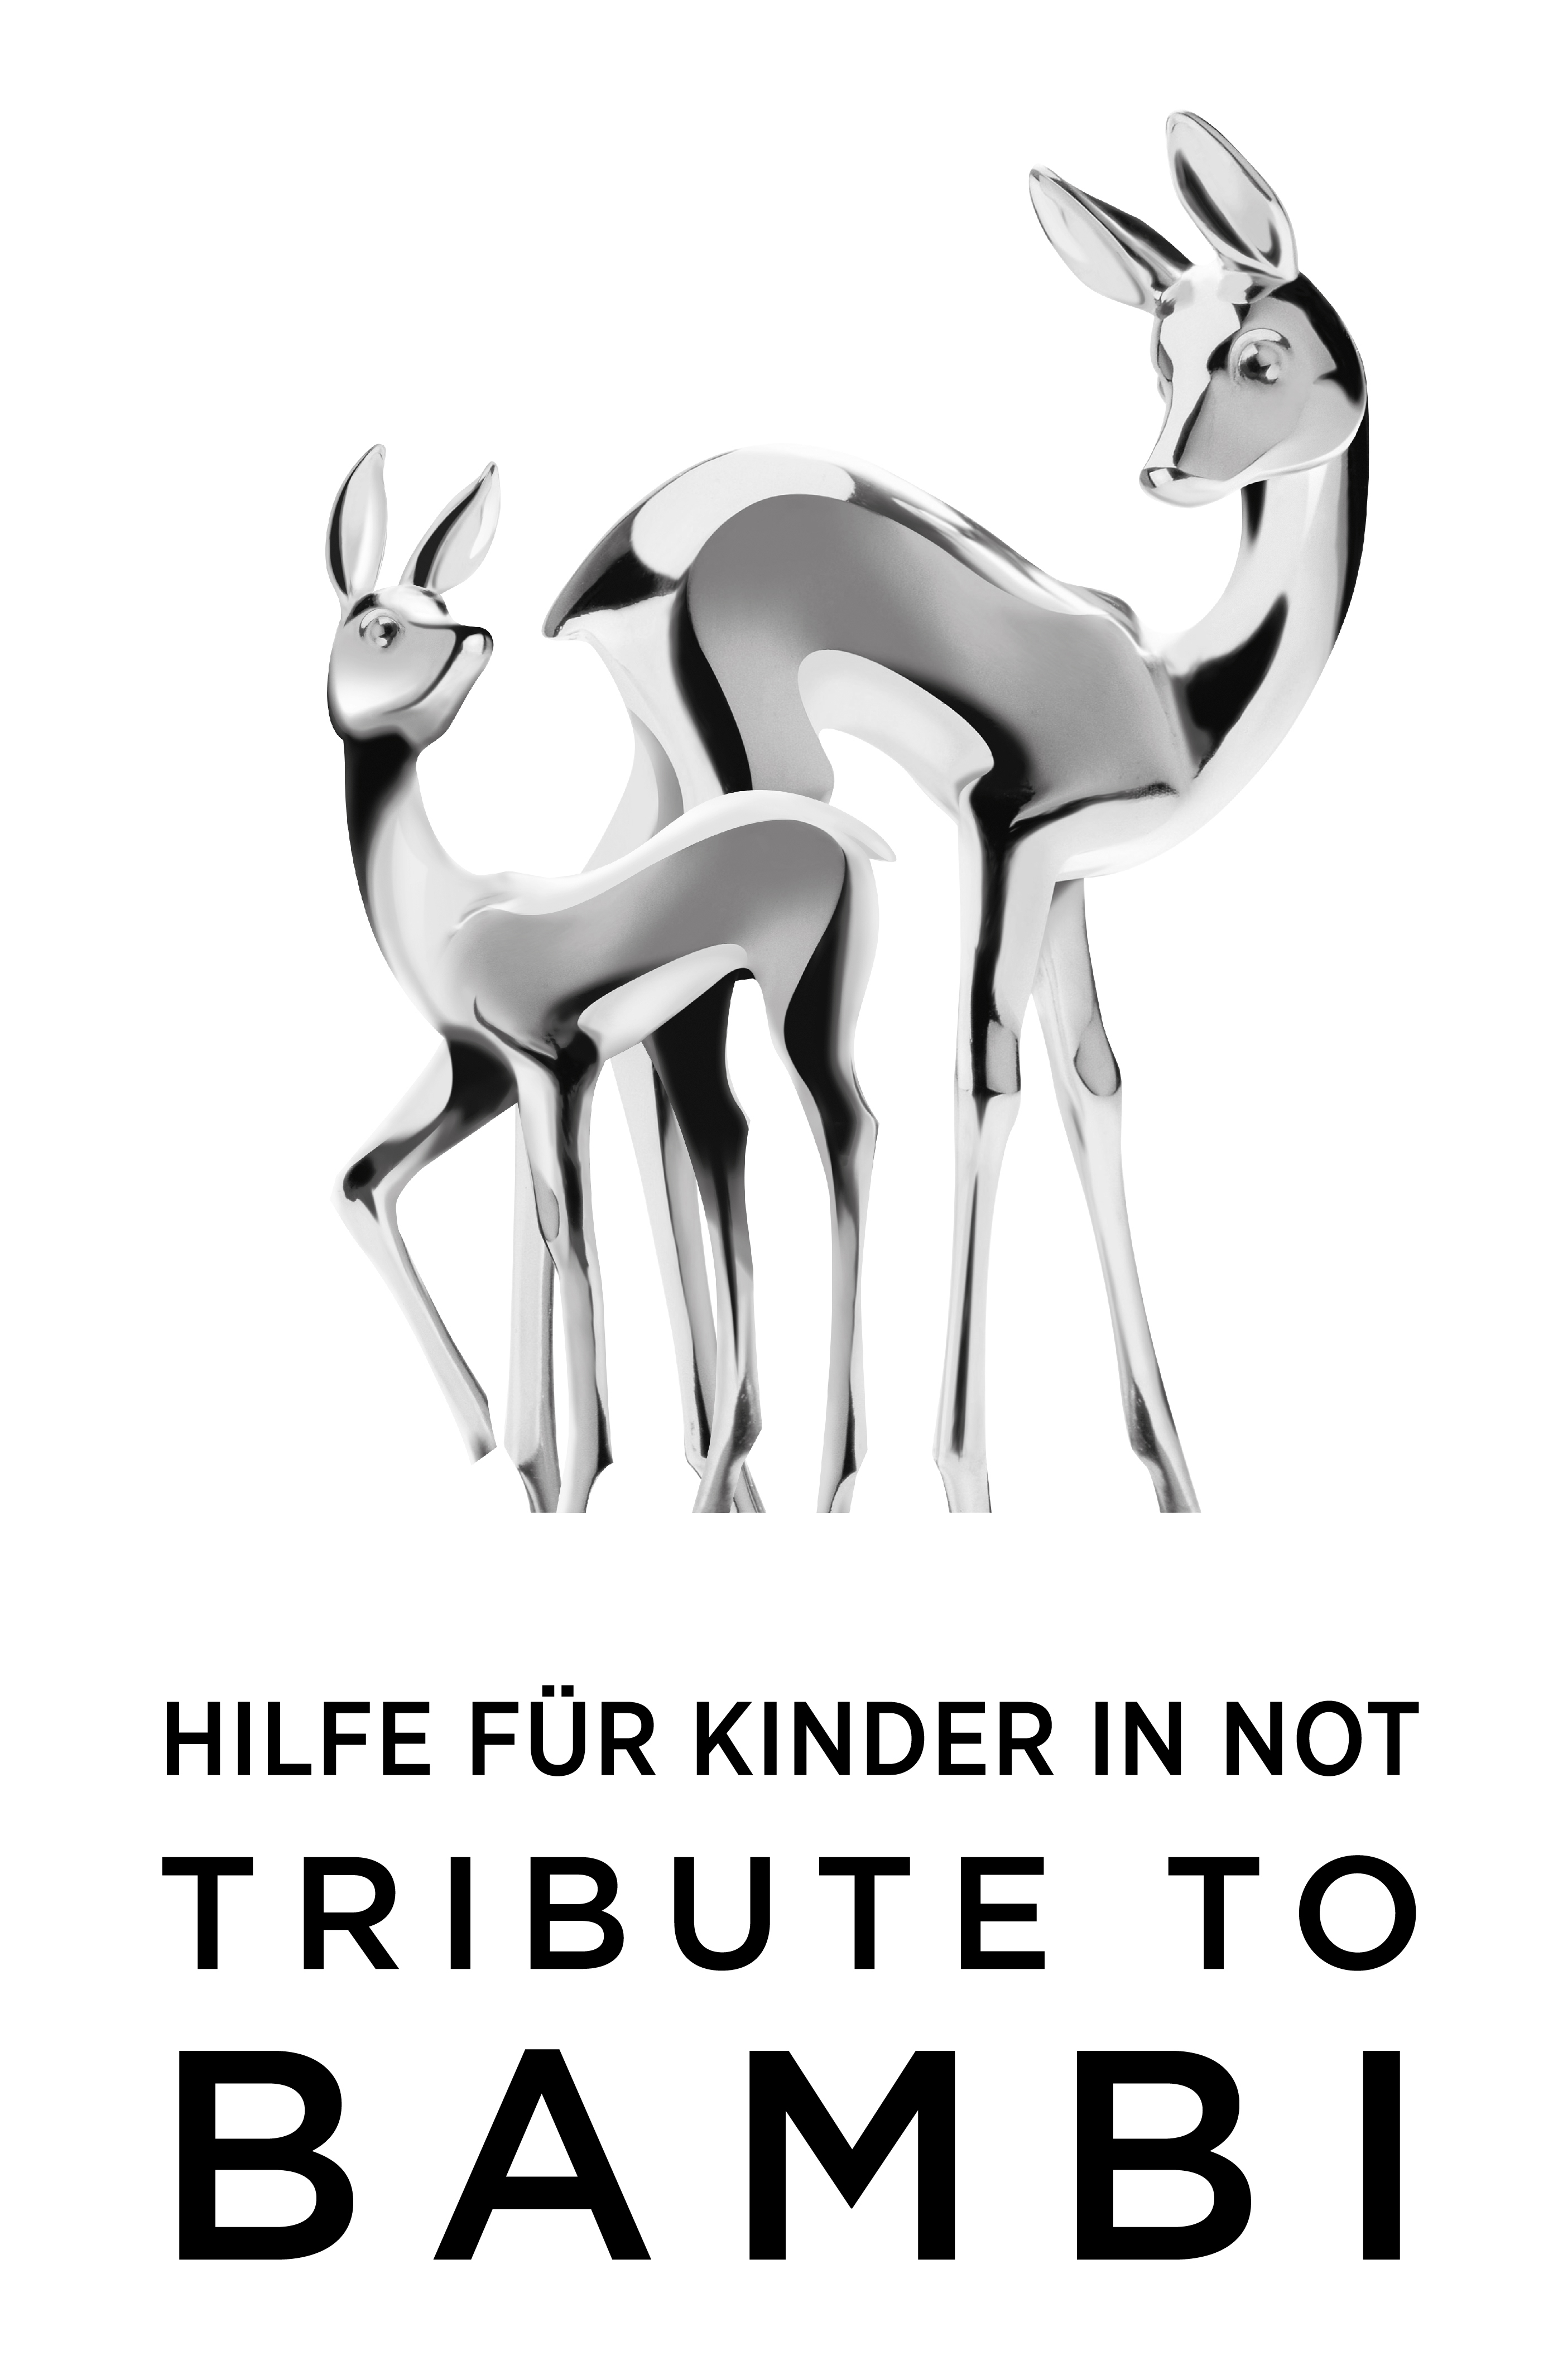 TRIBUTE TO BAMBI Logo